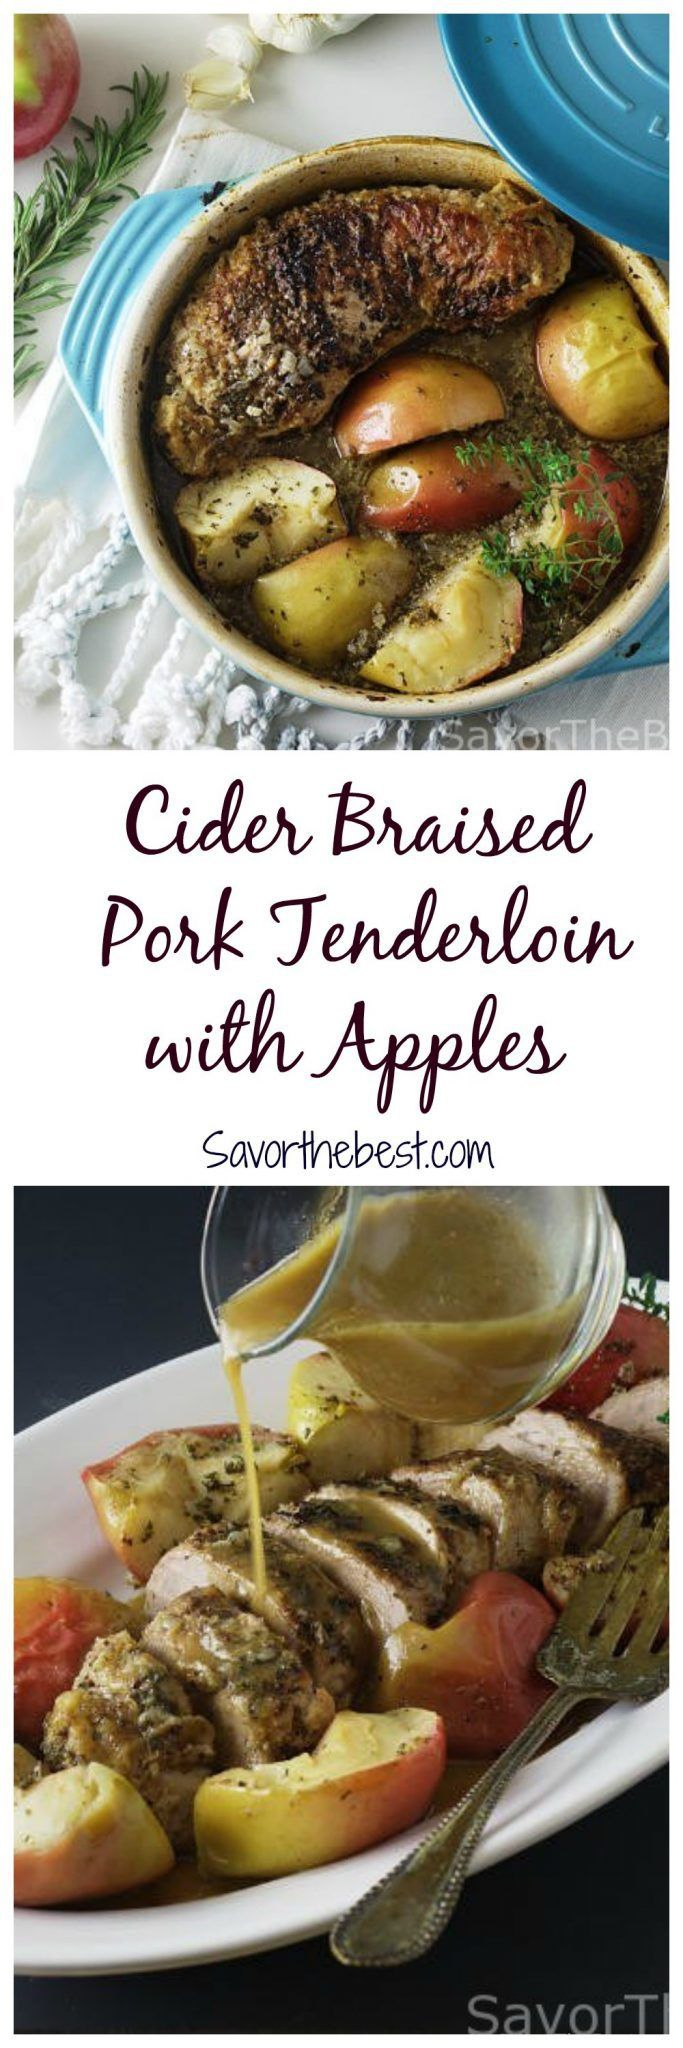 cider braised pork tenderloin with apples